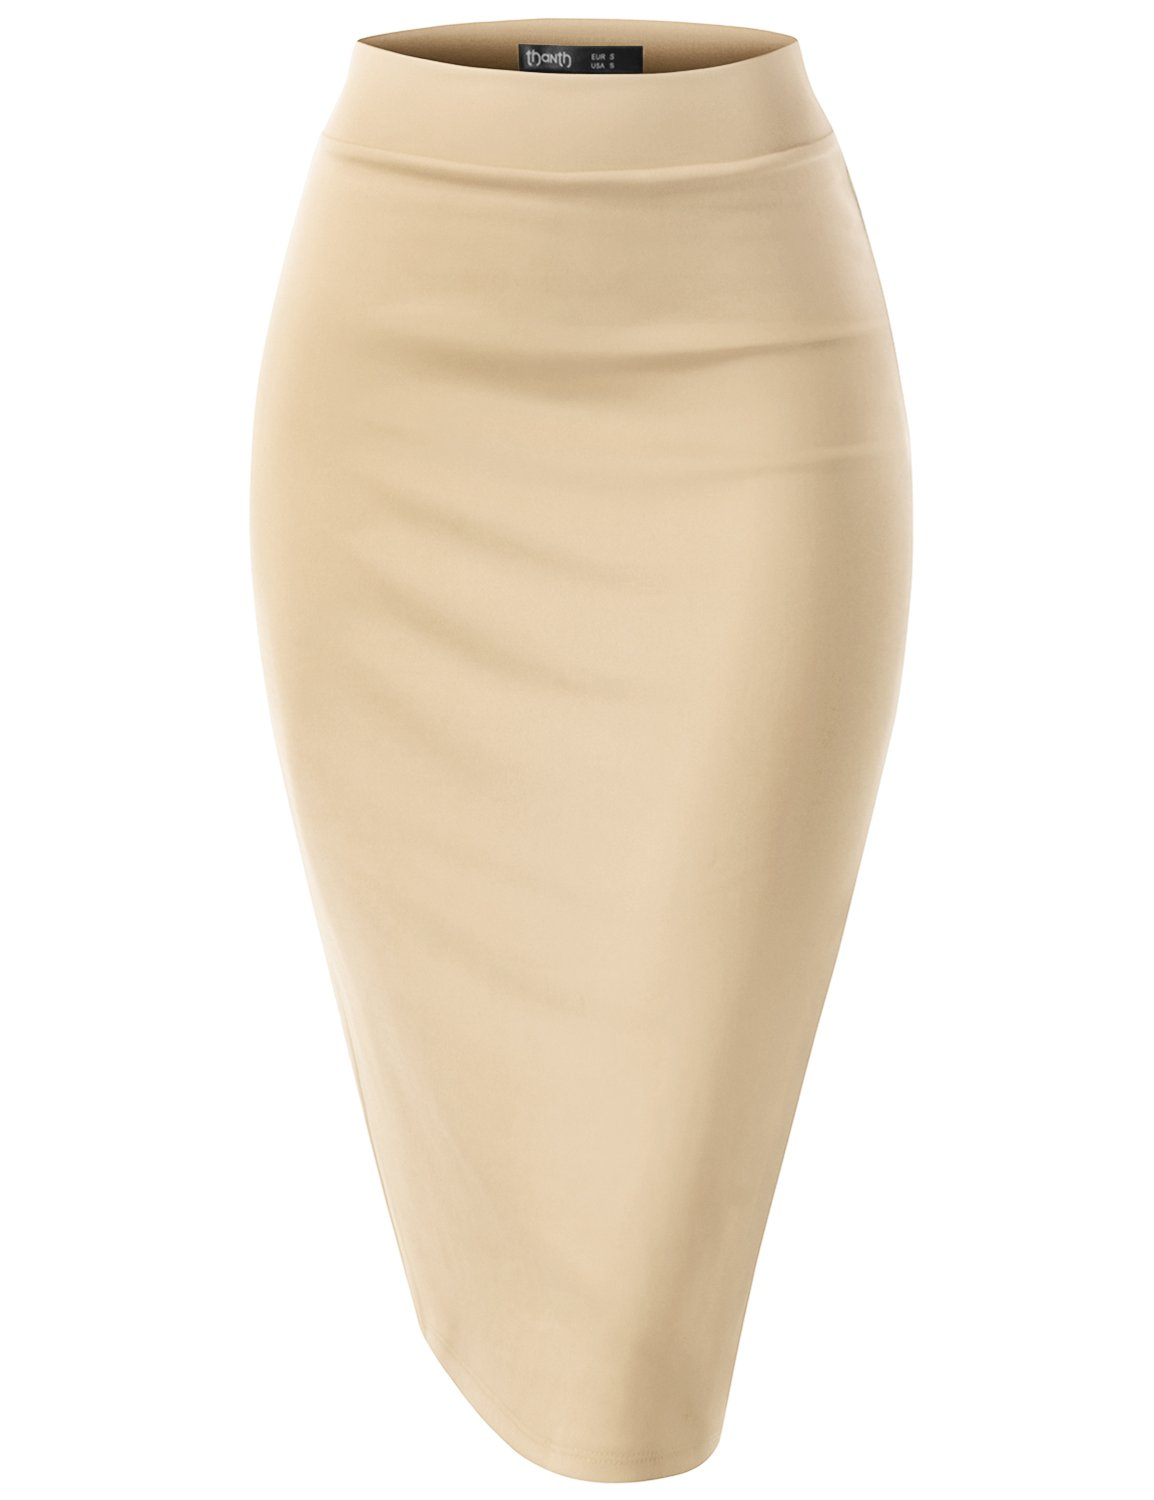 TWINTH Slim Fit Wear to Work Business Party Bodycon Plussize Pencil Skirts Oatmeal 2XL Plus Size by TWINTH